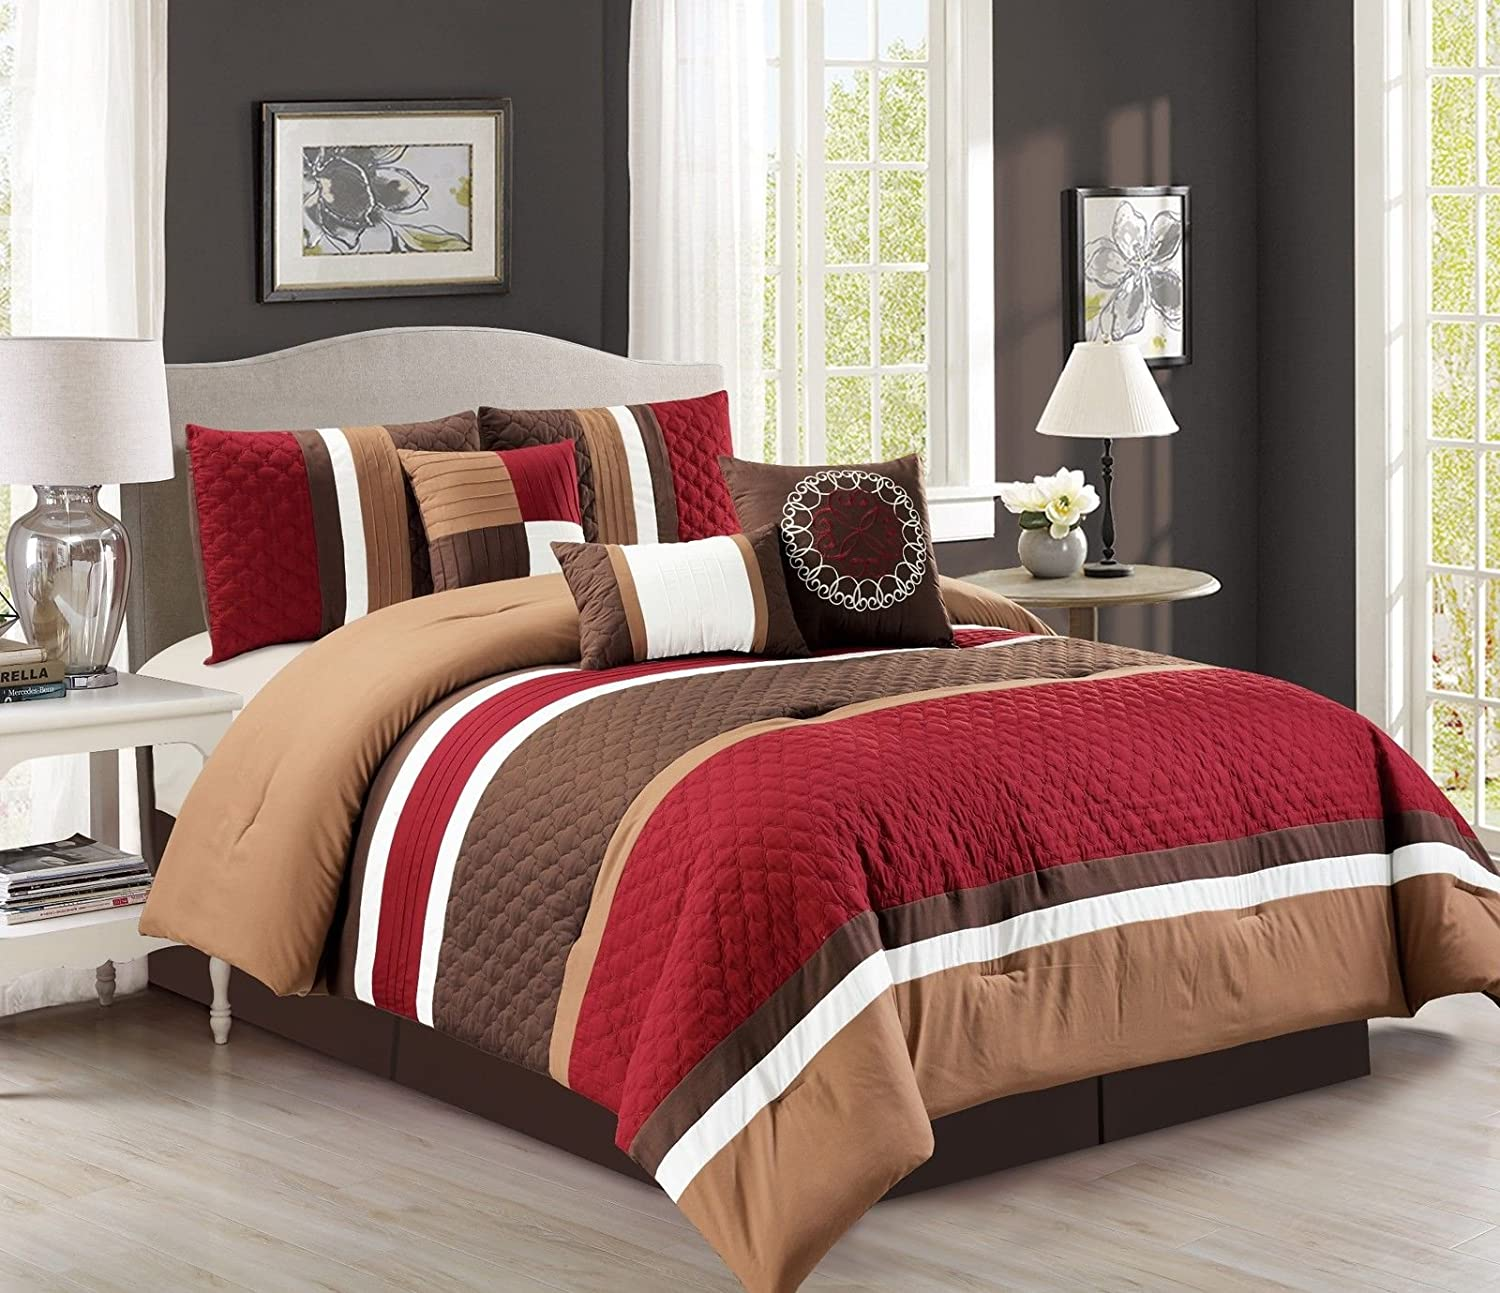 Chezmoi Collection Boston 7-piece Pinsonic Quilted Trellis Quatrefoil Design Striped Pleated Bedding Comforter Set Queen, Burgundy Red